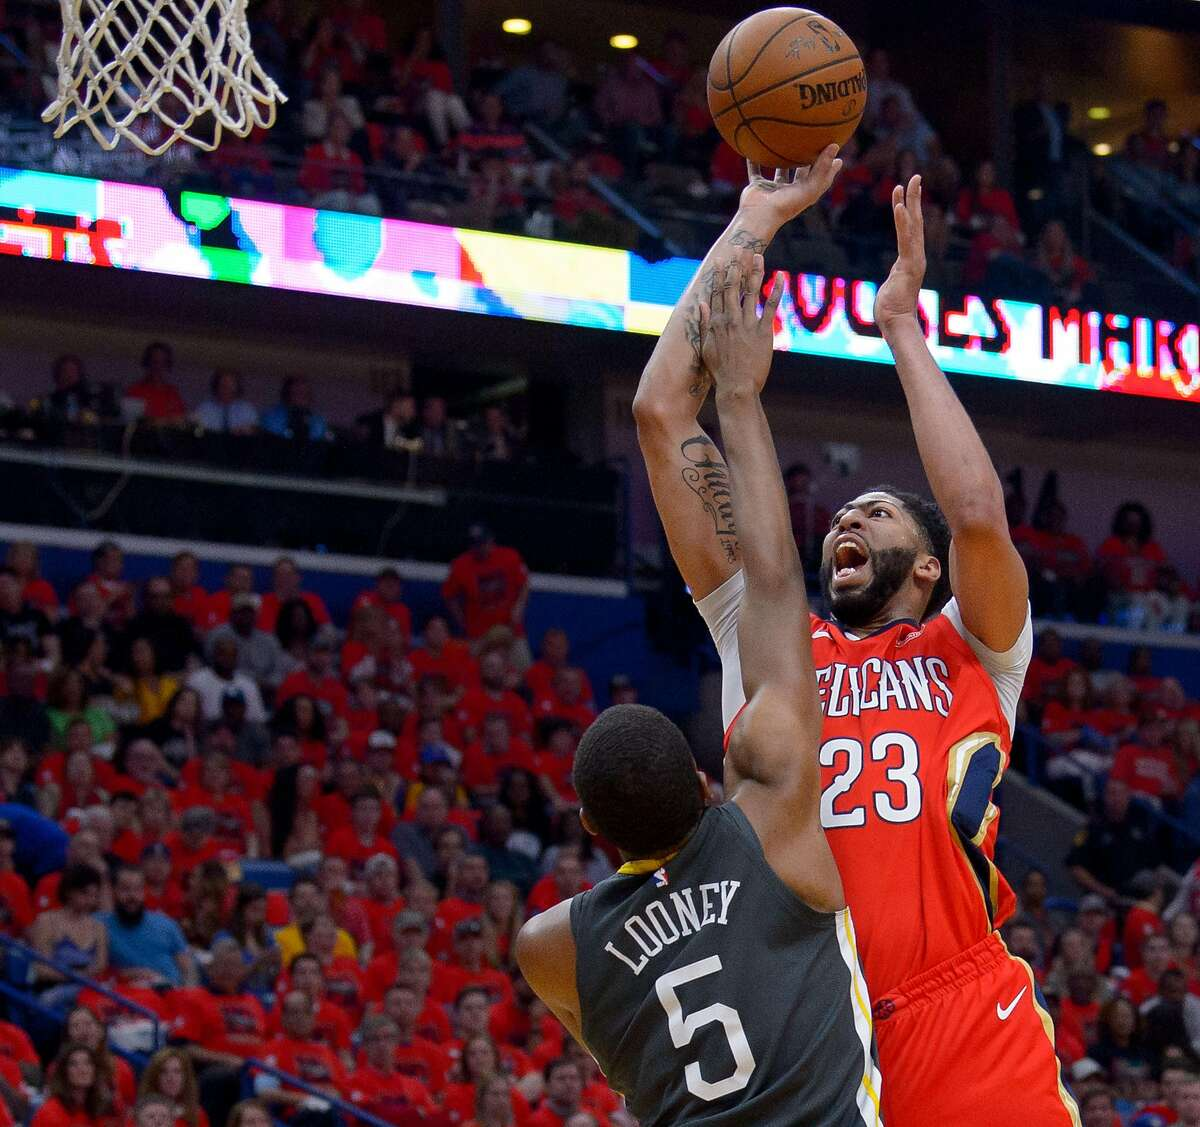 New Orleans Pelicans forward Anthony Davis (23) shoots over Golden State Warriors forward Kevon Looney (5) during the first half of game 3 of the conference semifinal NBA playoffs at the Smoothie King Center in New Orleans, La. Friday, May 4, 2018.